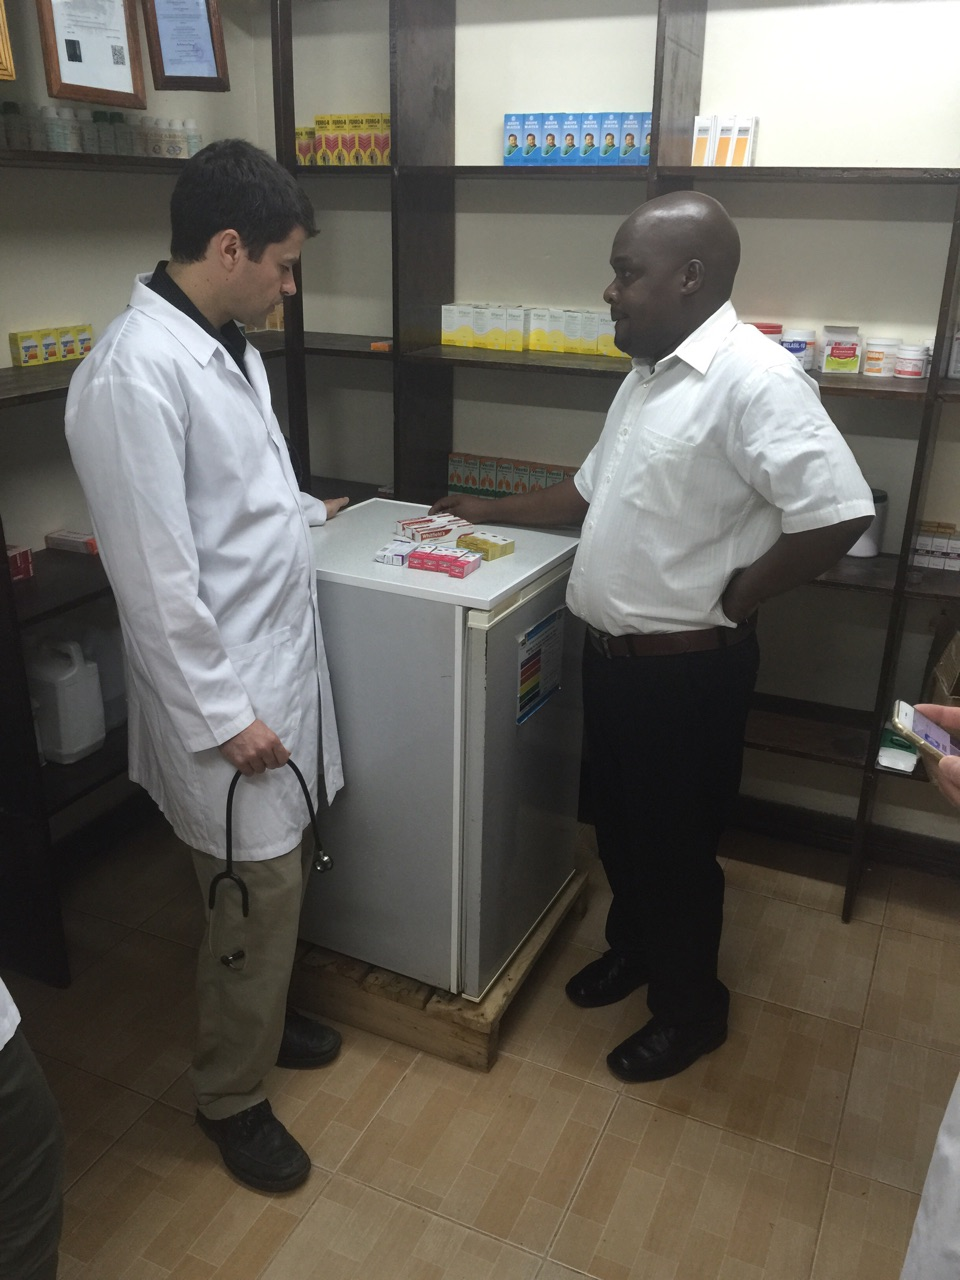 Dr. Hawkes in the Fluorspar pharmacy